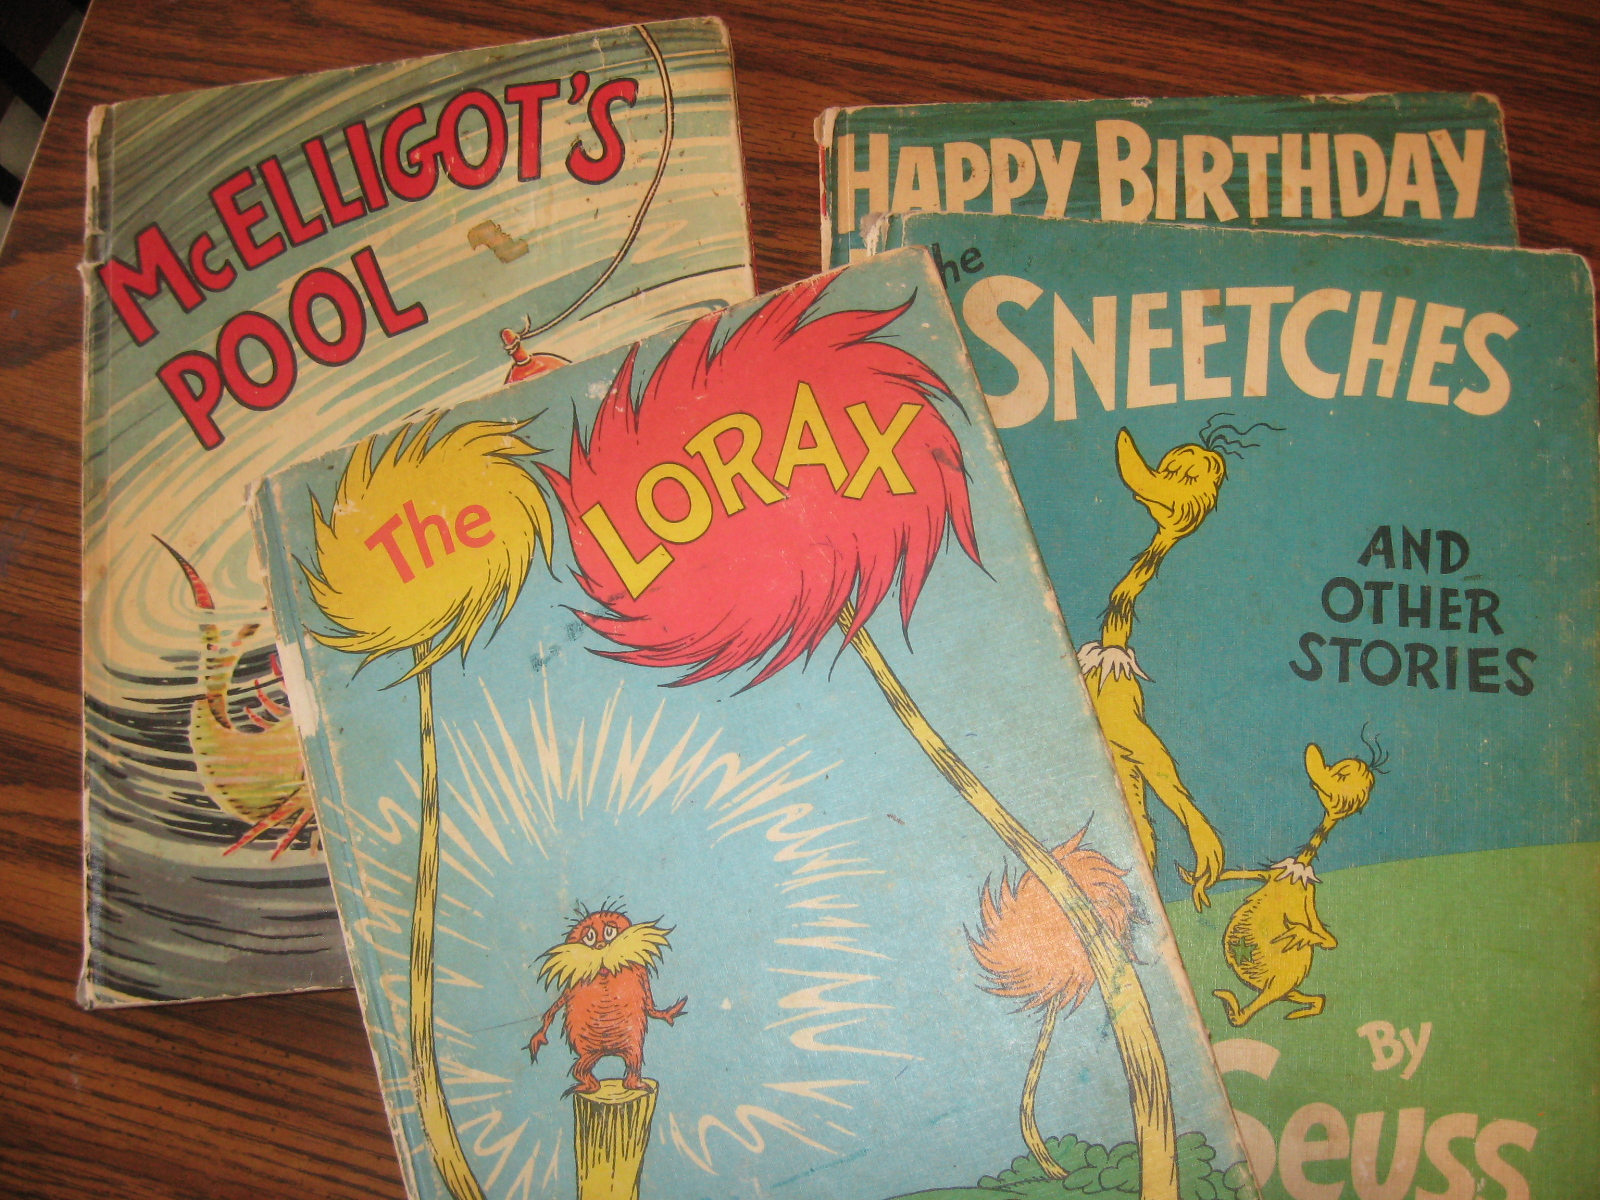 short biography theodore geisel Dr seuss, writer: how the grinch stole christmas acclaimed writer, dr seuss was born theodor geisel in springfield, massachusetts, on wednesday, march 2nd, 1904.